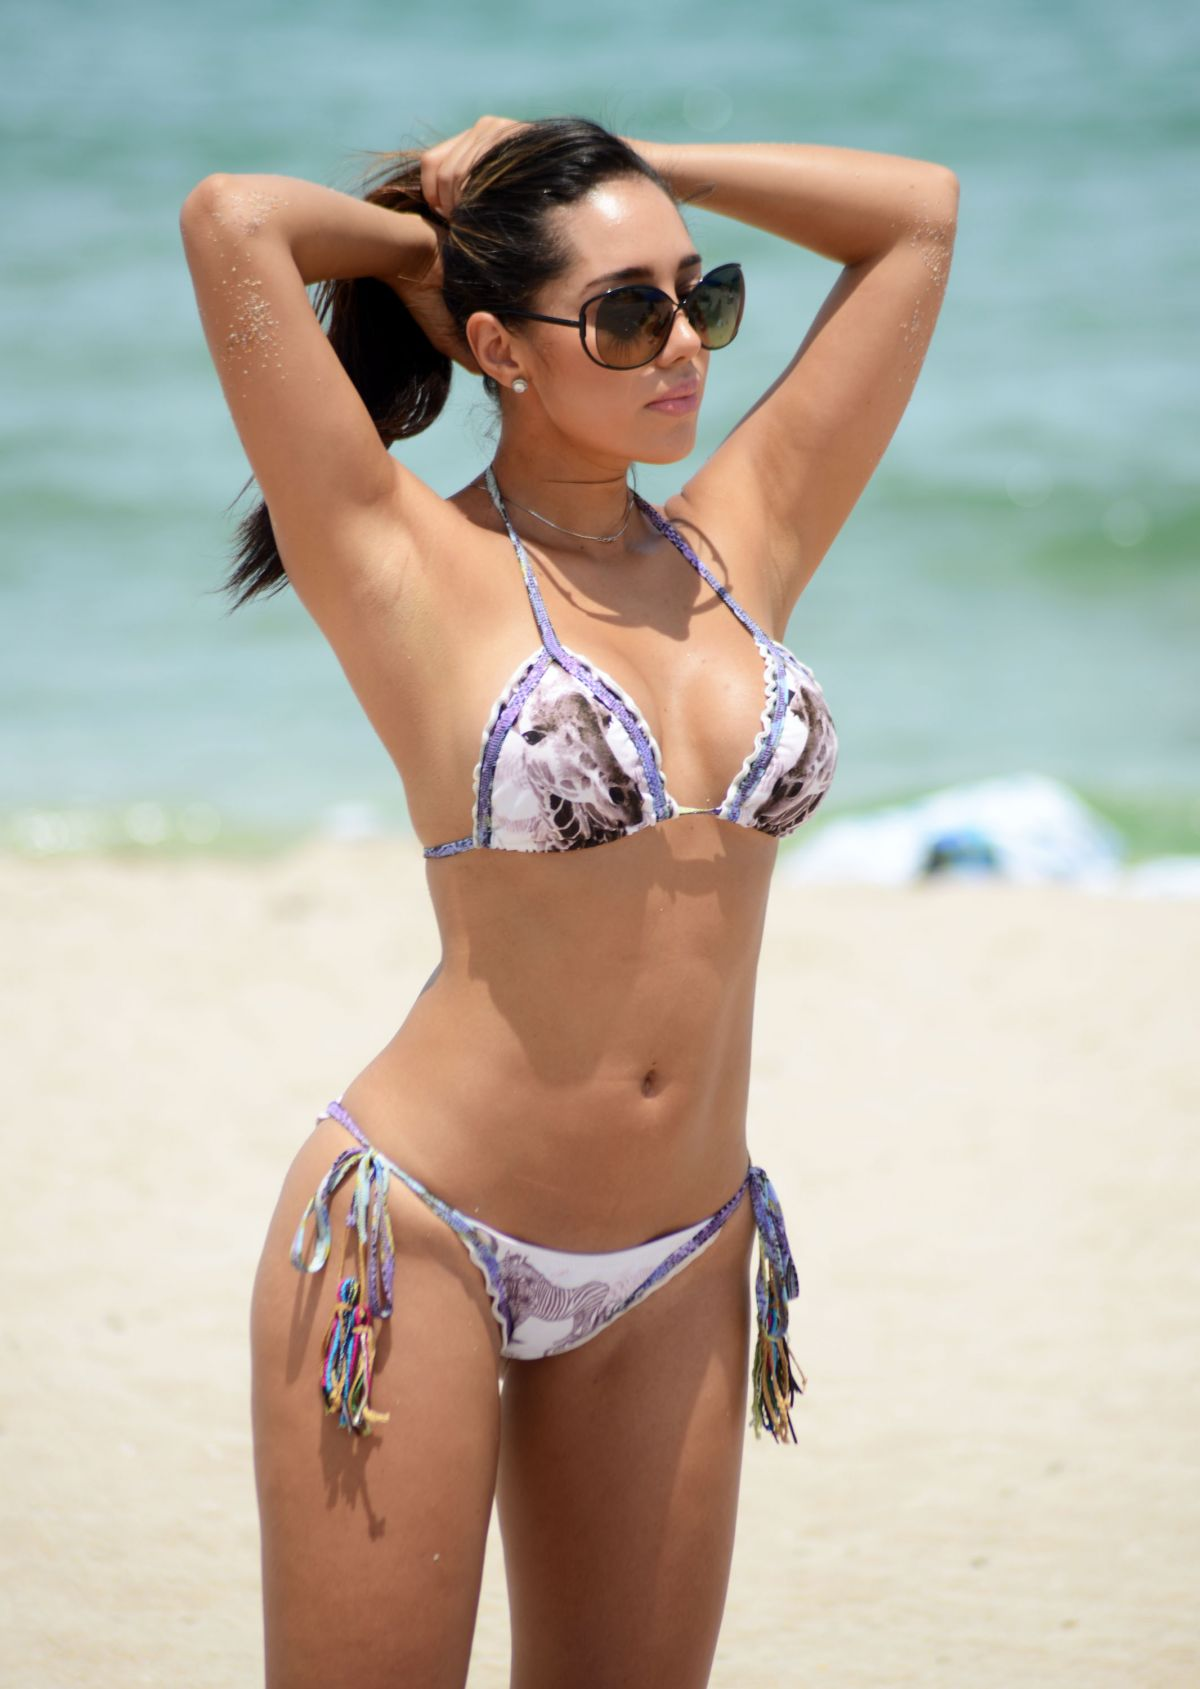 ANDREA CALLE in Bkini at a Beach in Miami